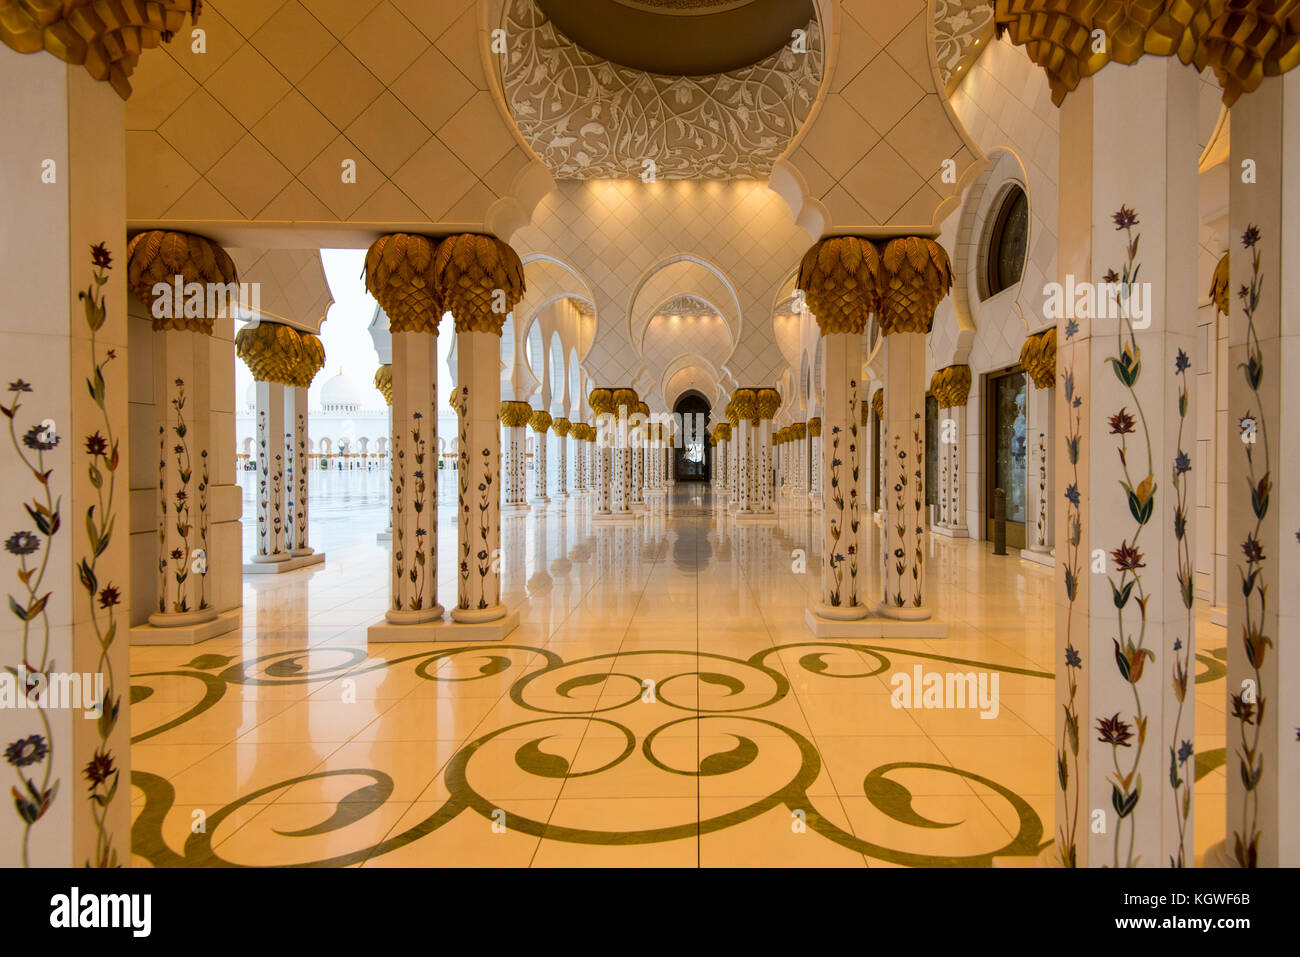 ABU DHABI, UAE - 1NOV2017: The North Collanade of the Sheik Zayed Grand Mosque. - Stock Image